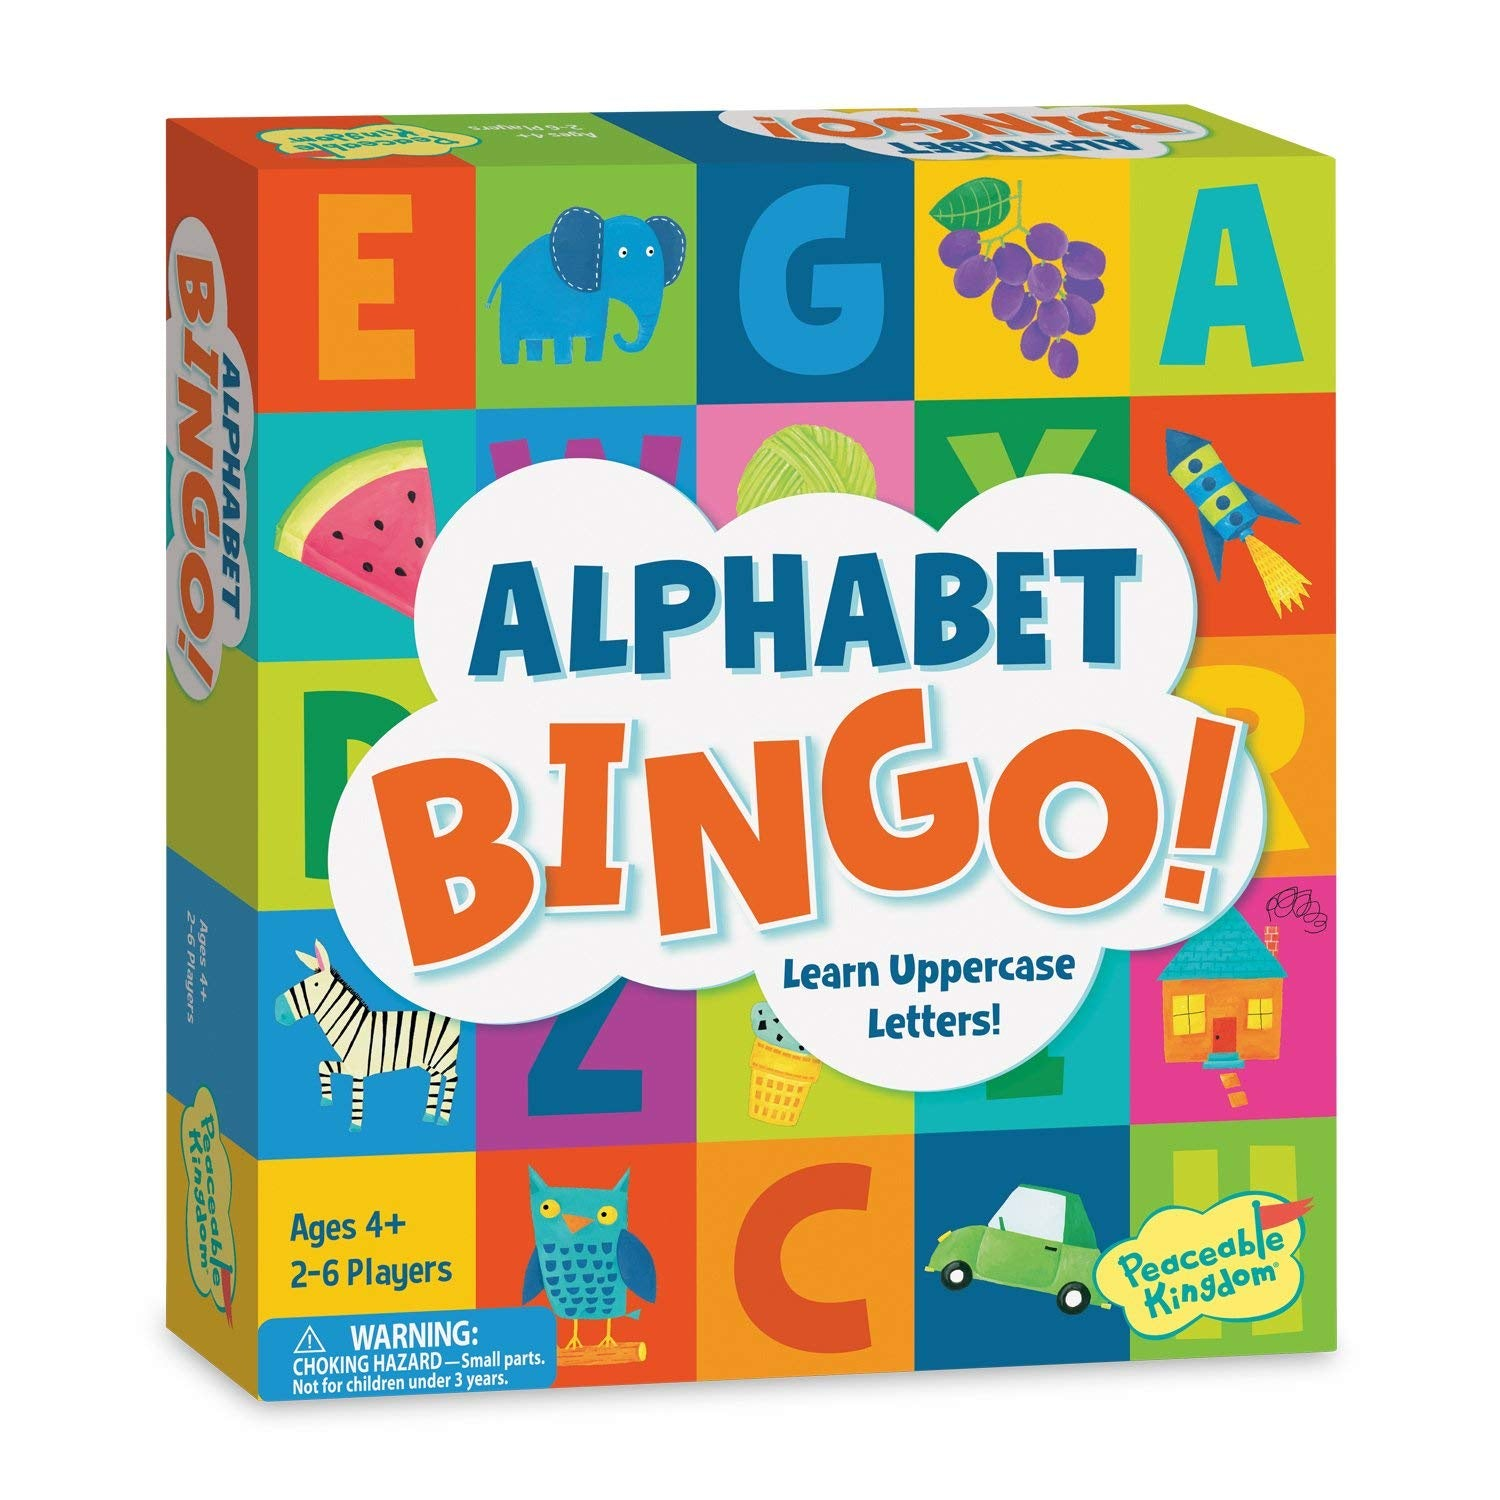 Alphabet Bingo! Learn Uppercase Letters!